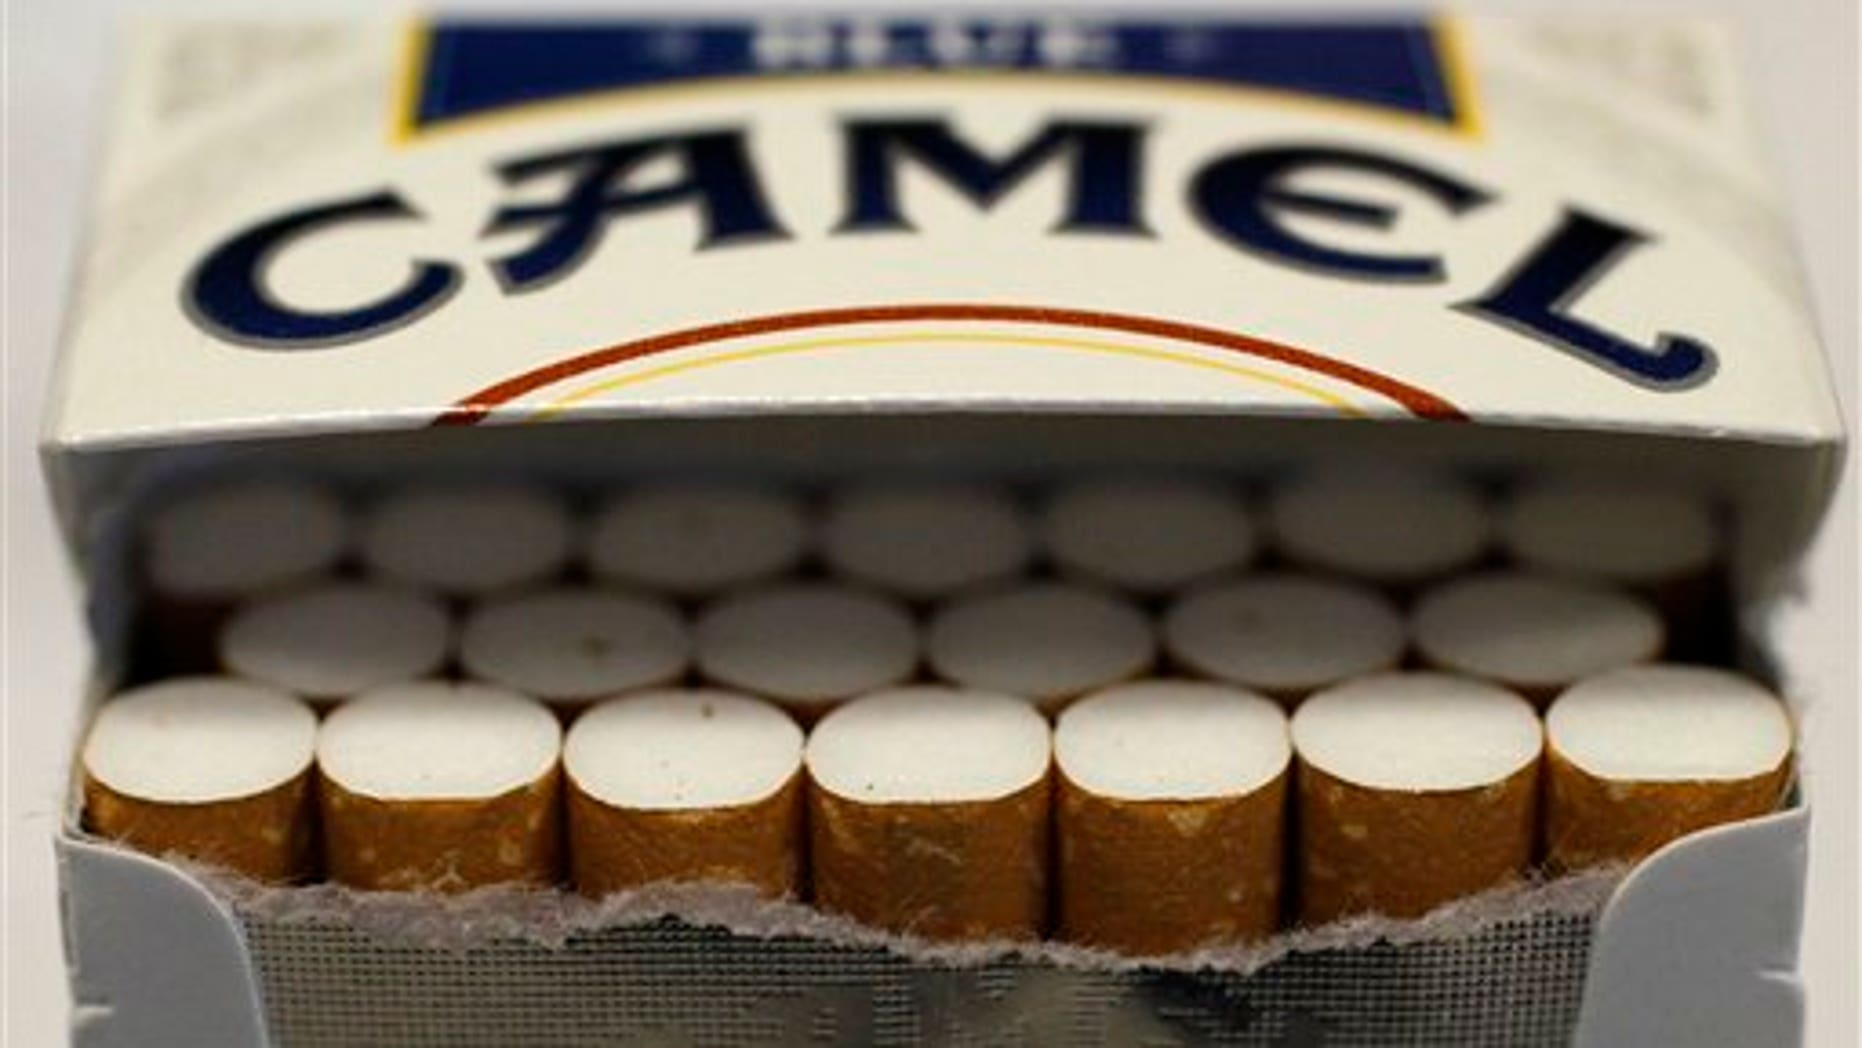 Pictured is an open pack of Camel cigarettes purchased Friday, Nov. 30, 2012, in Chicago. New tobacco products have come nearly to a halt in the U.S. because regulatory reviews for thousands of applications required by a 2009 law are taking much longer than the law requires. Though it might sound like good news from a health perspective, the halt demonstrates how tricky it is to start regulating an industry.(AP Photo/Charles Rex Arbogast)